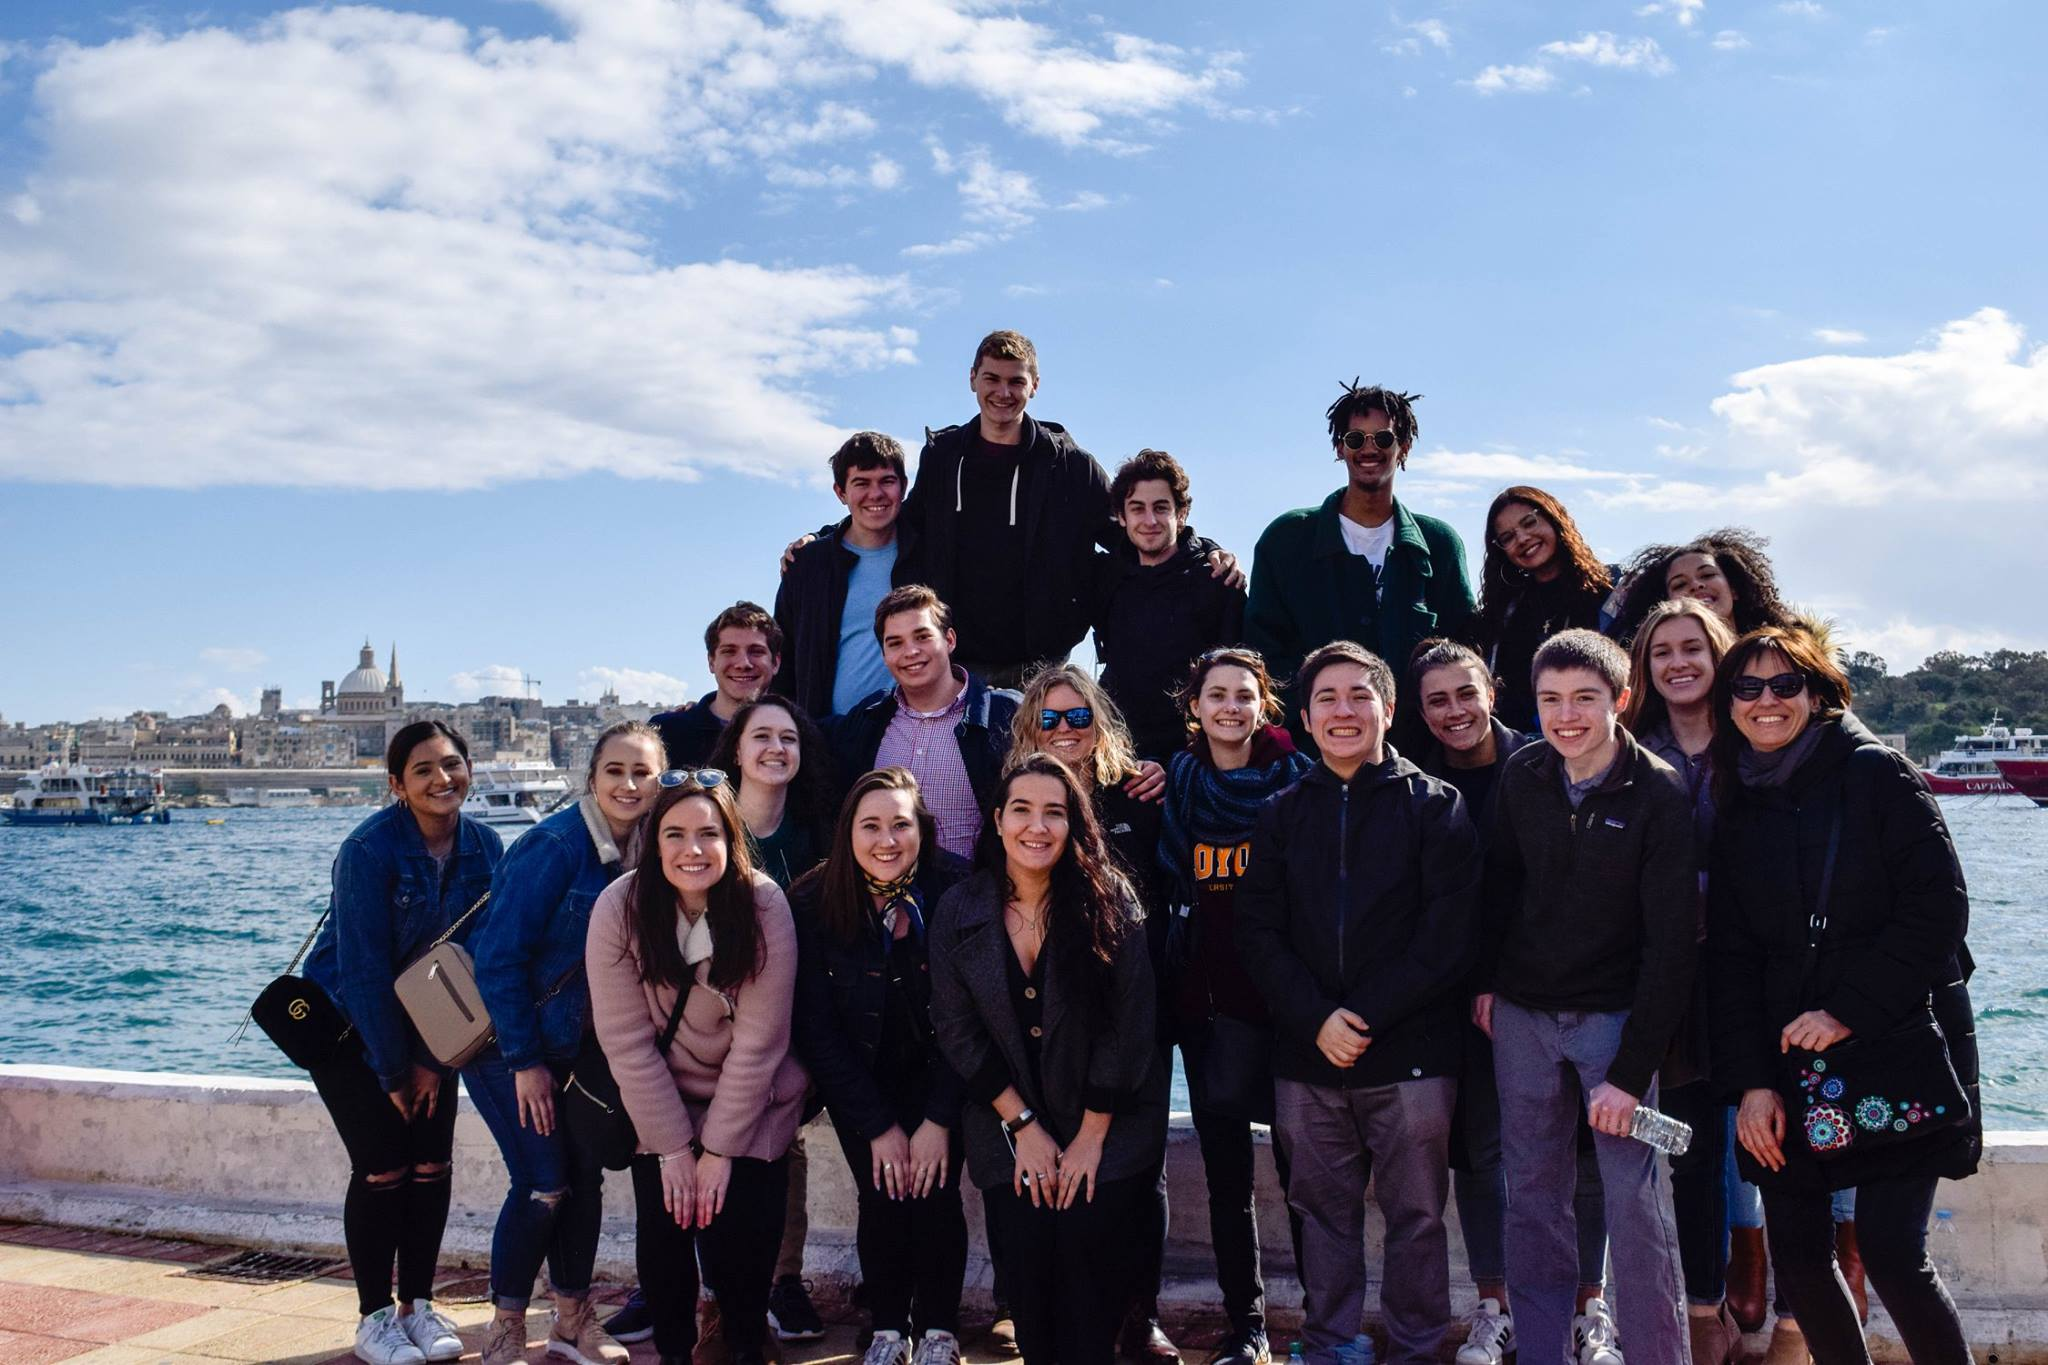 A group of students from Loyola University Chicago's John Felice Rome Centre poses for a photo in Malta where they learned about the refugee situation in the country (Ola Wysocki)